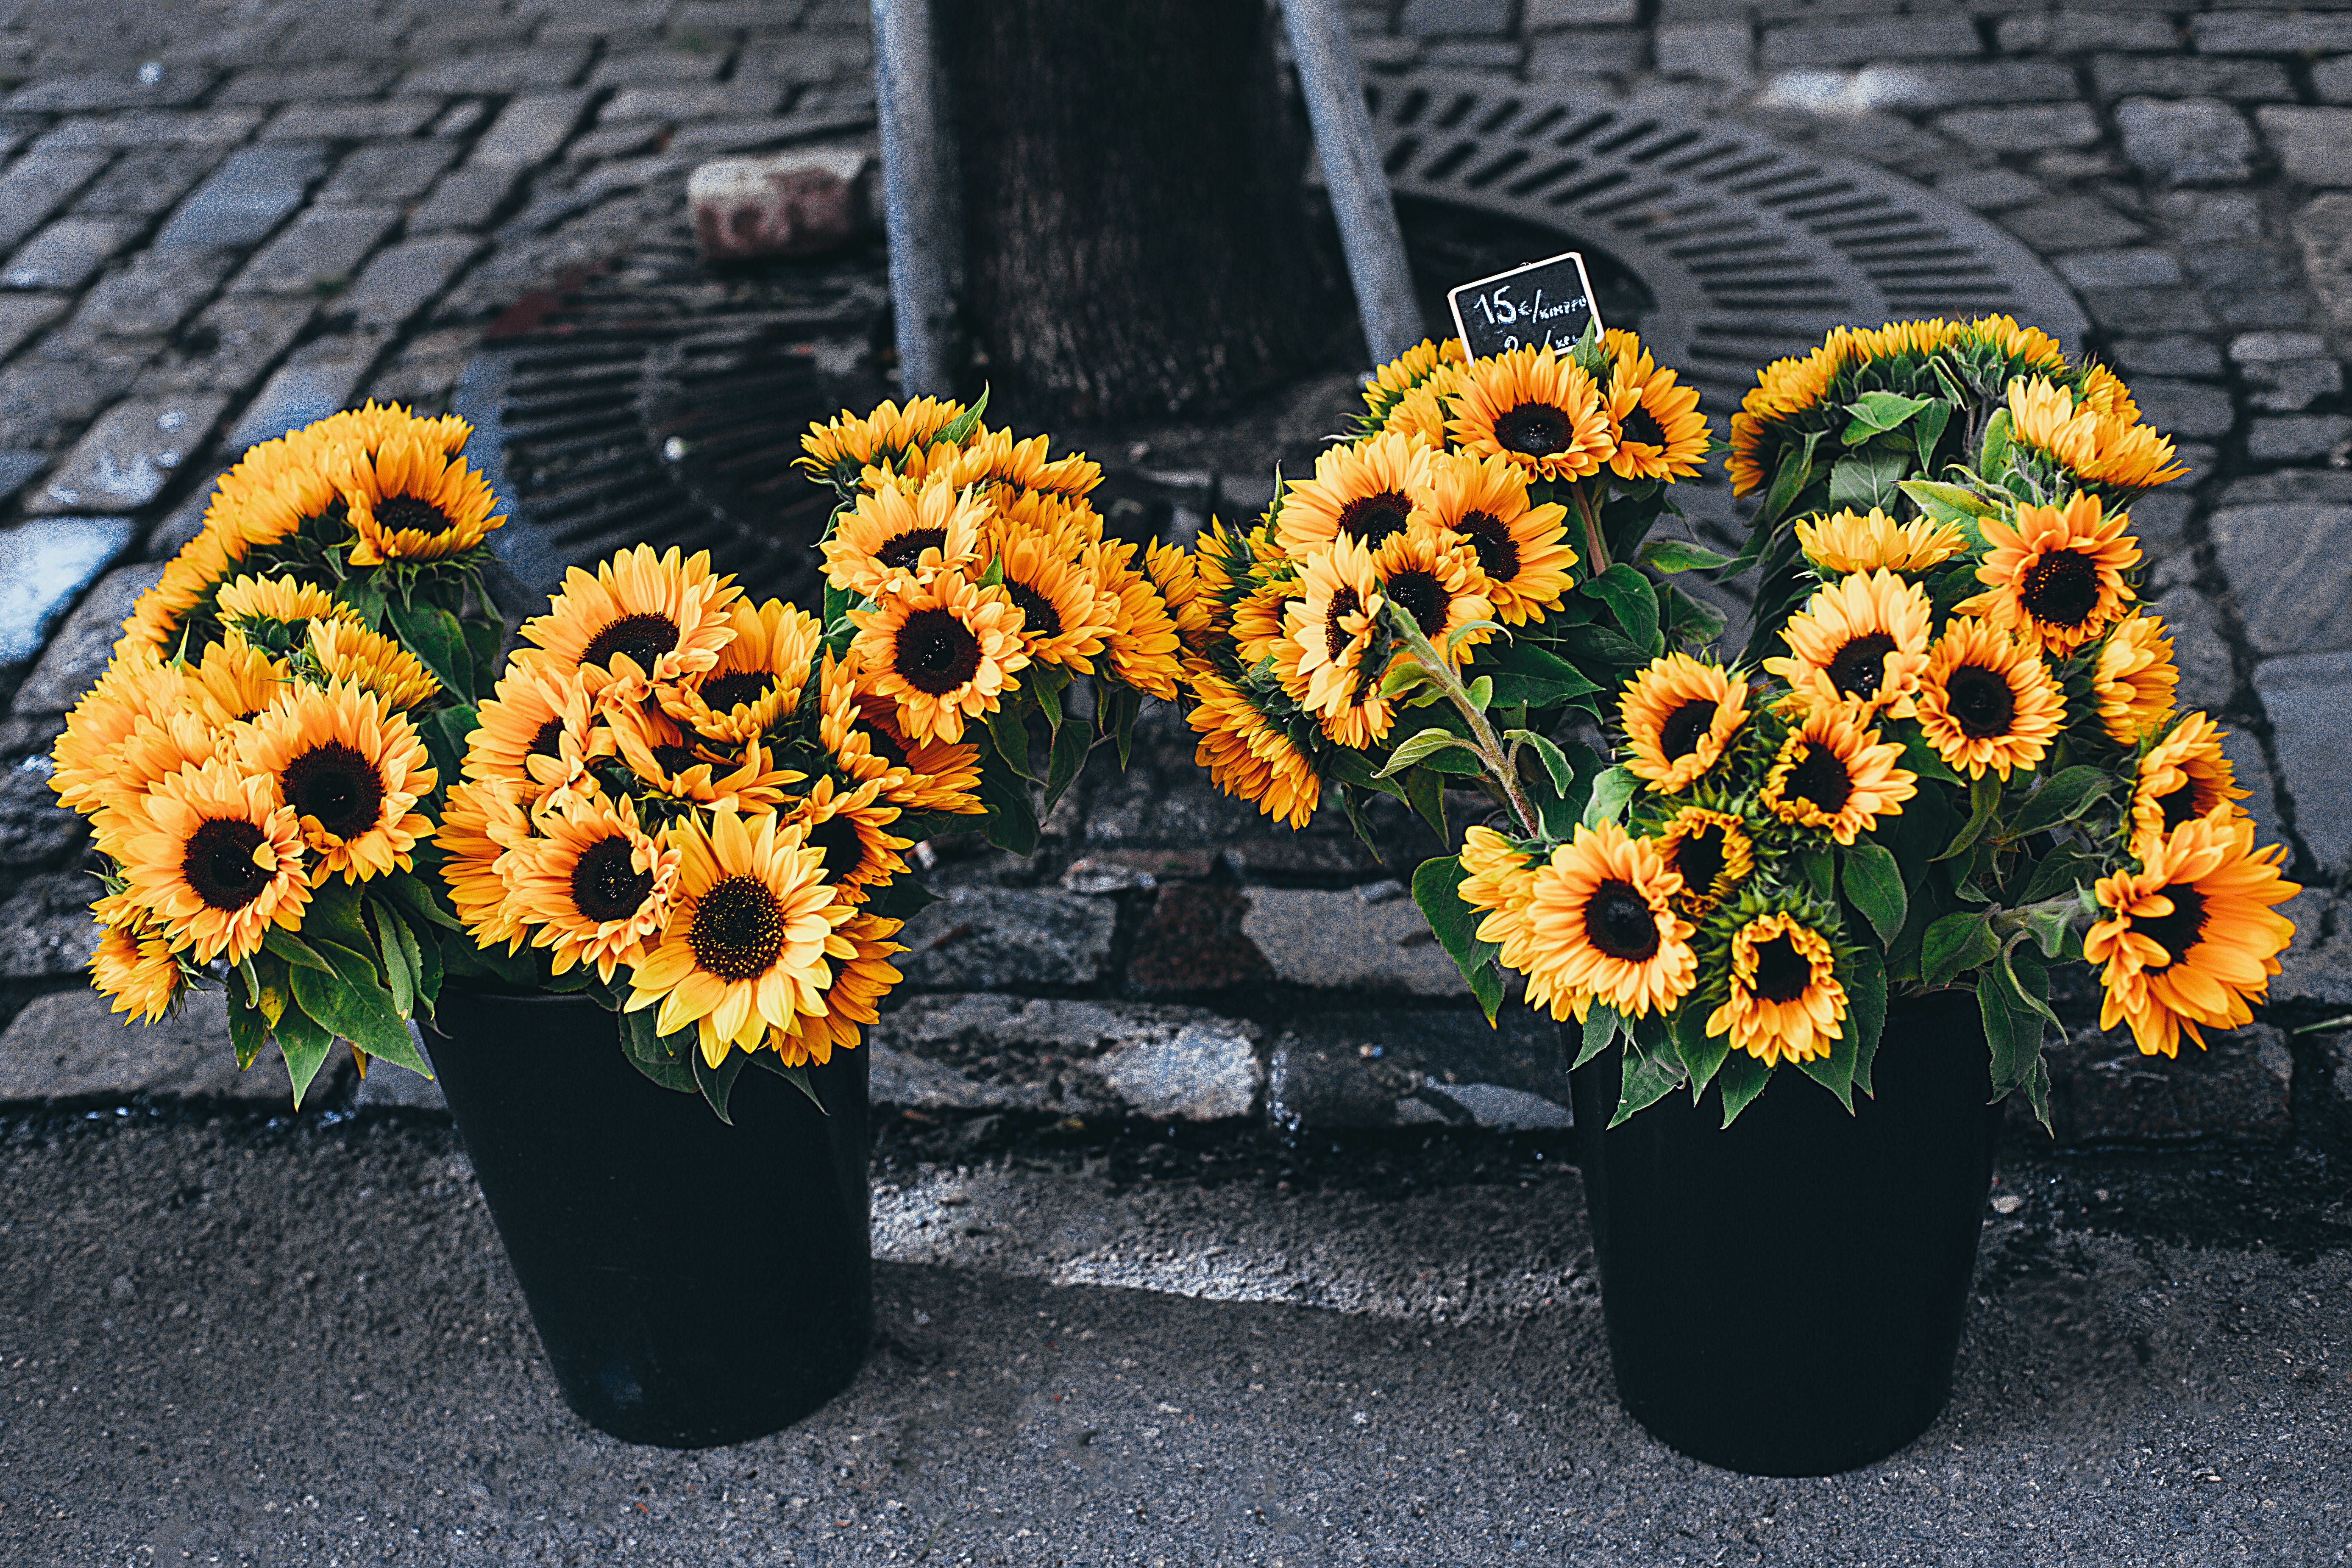 Sunflowers in Pot Beside Road